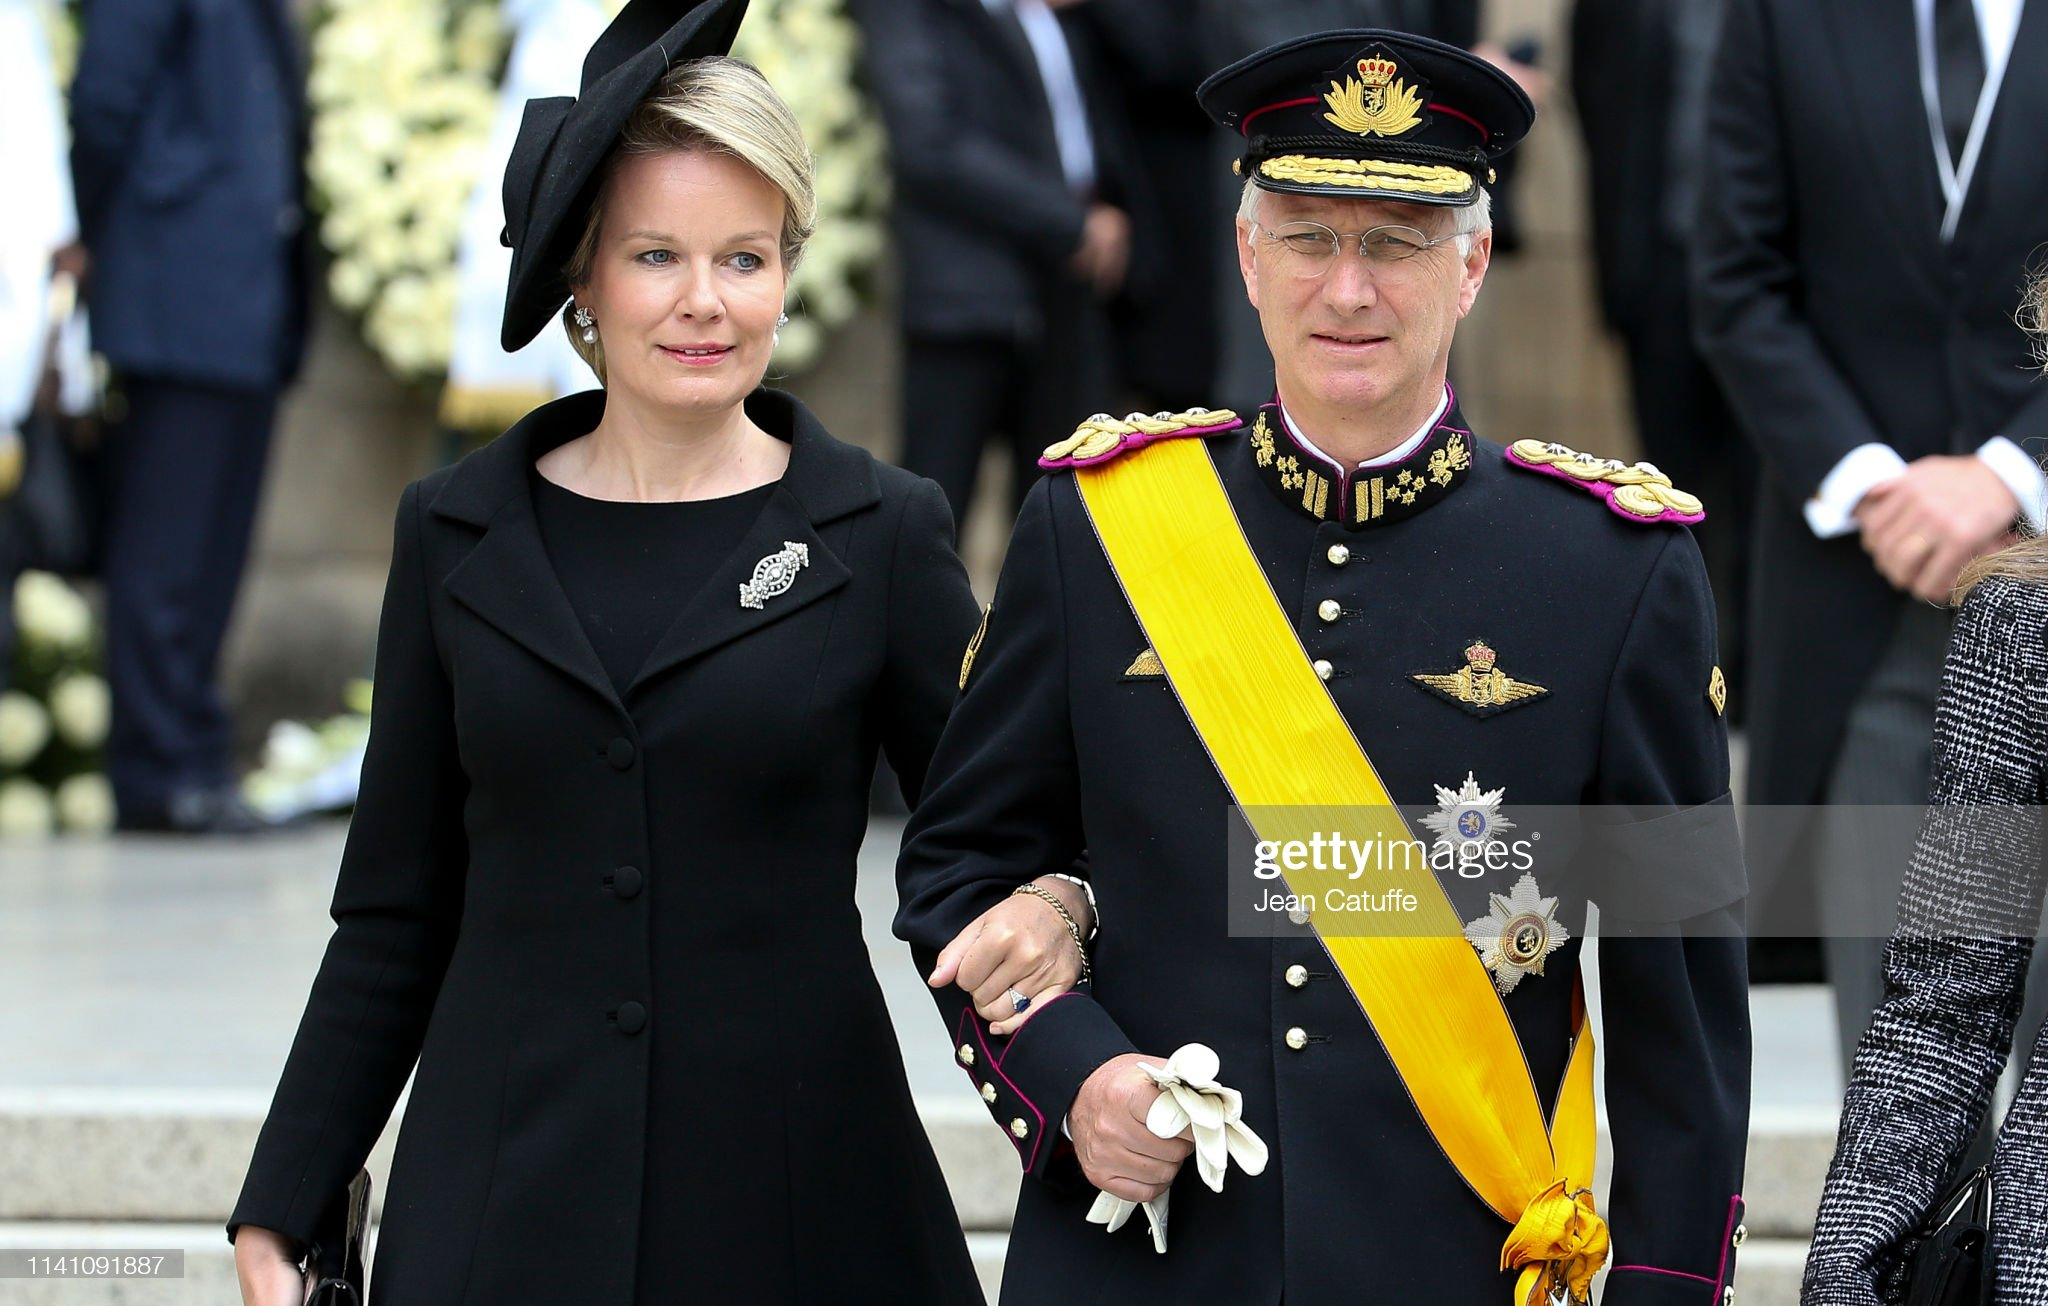 Похороны Великого Герцога Жана https://media.gettyimages.com/photos/king-philippe-of-belgium-and-queen-mathilde-of-belgium-leave-the-of-picture-id1141091887?s=2048x2048